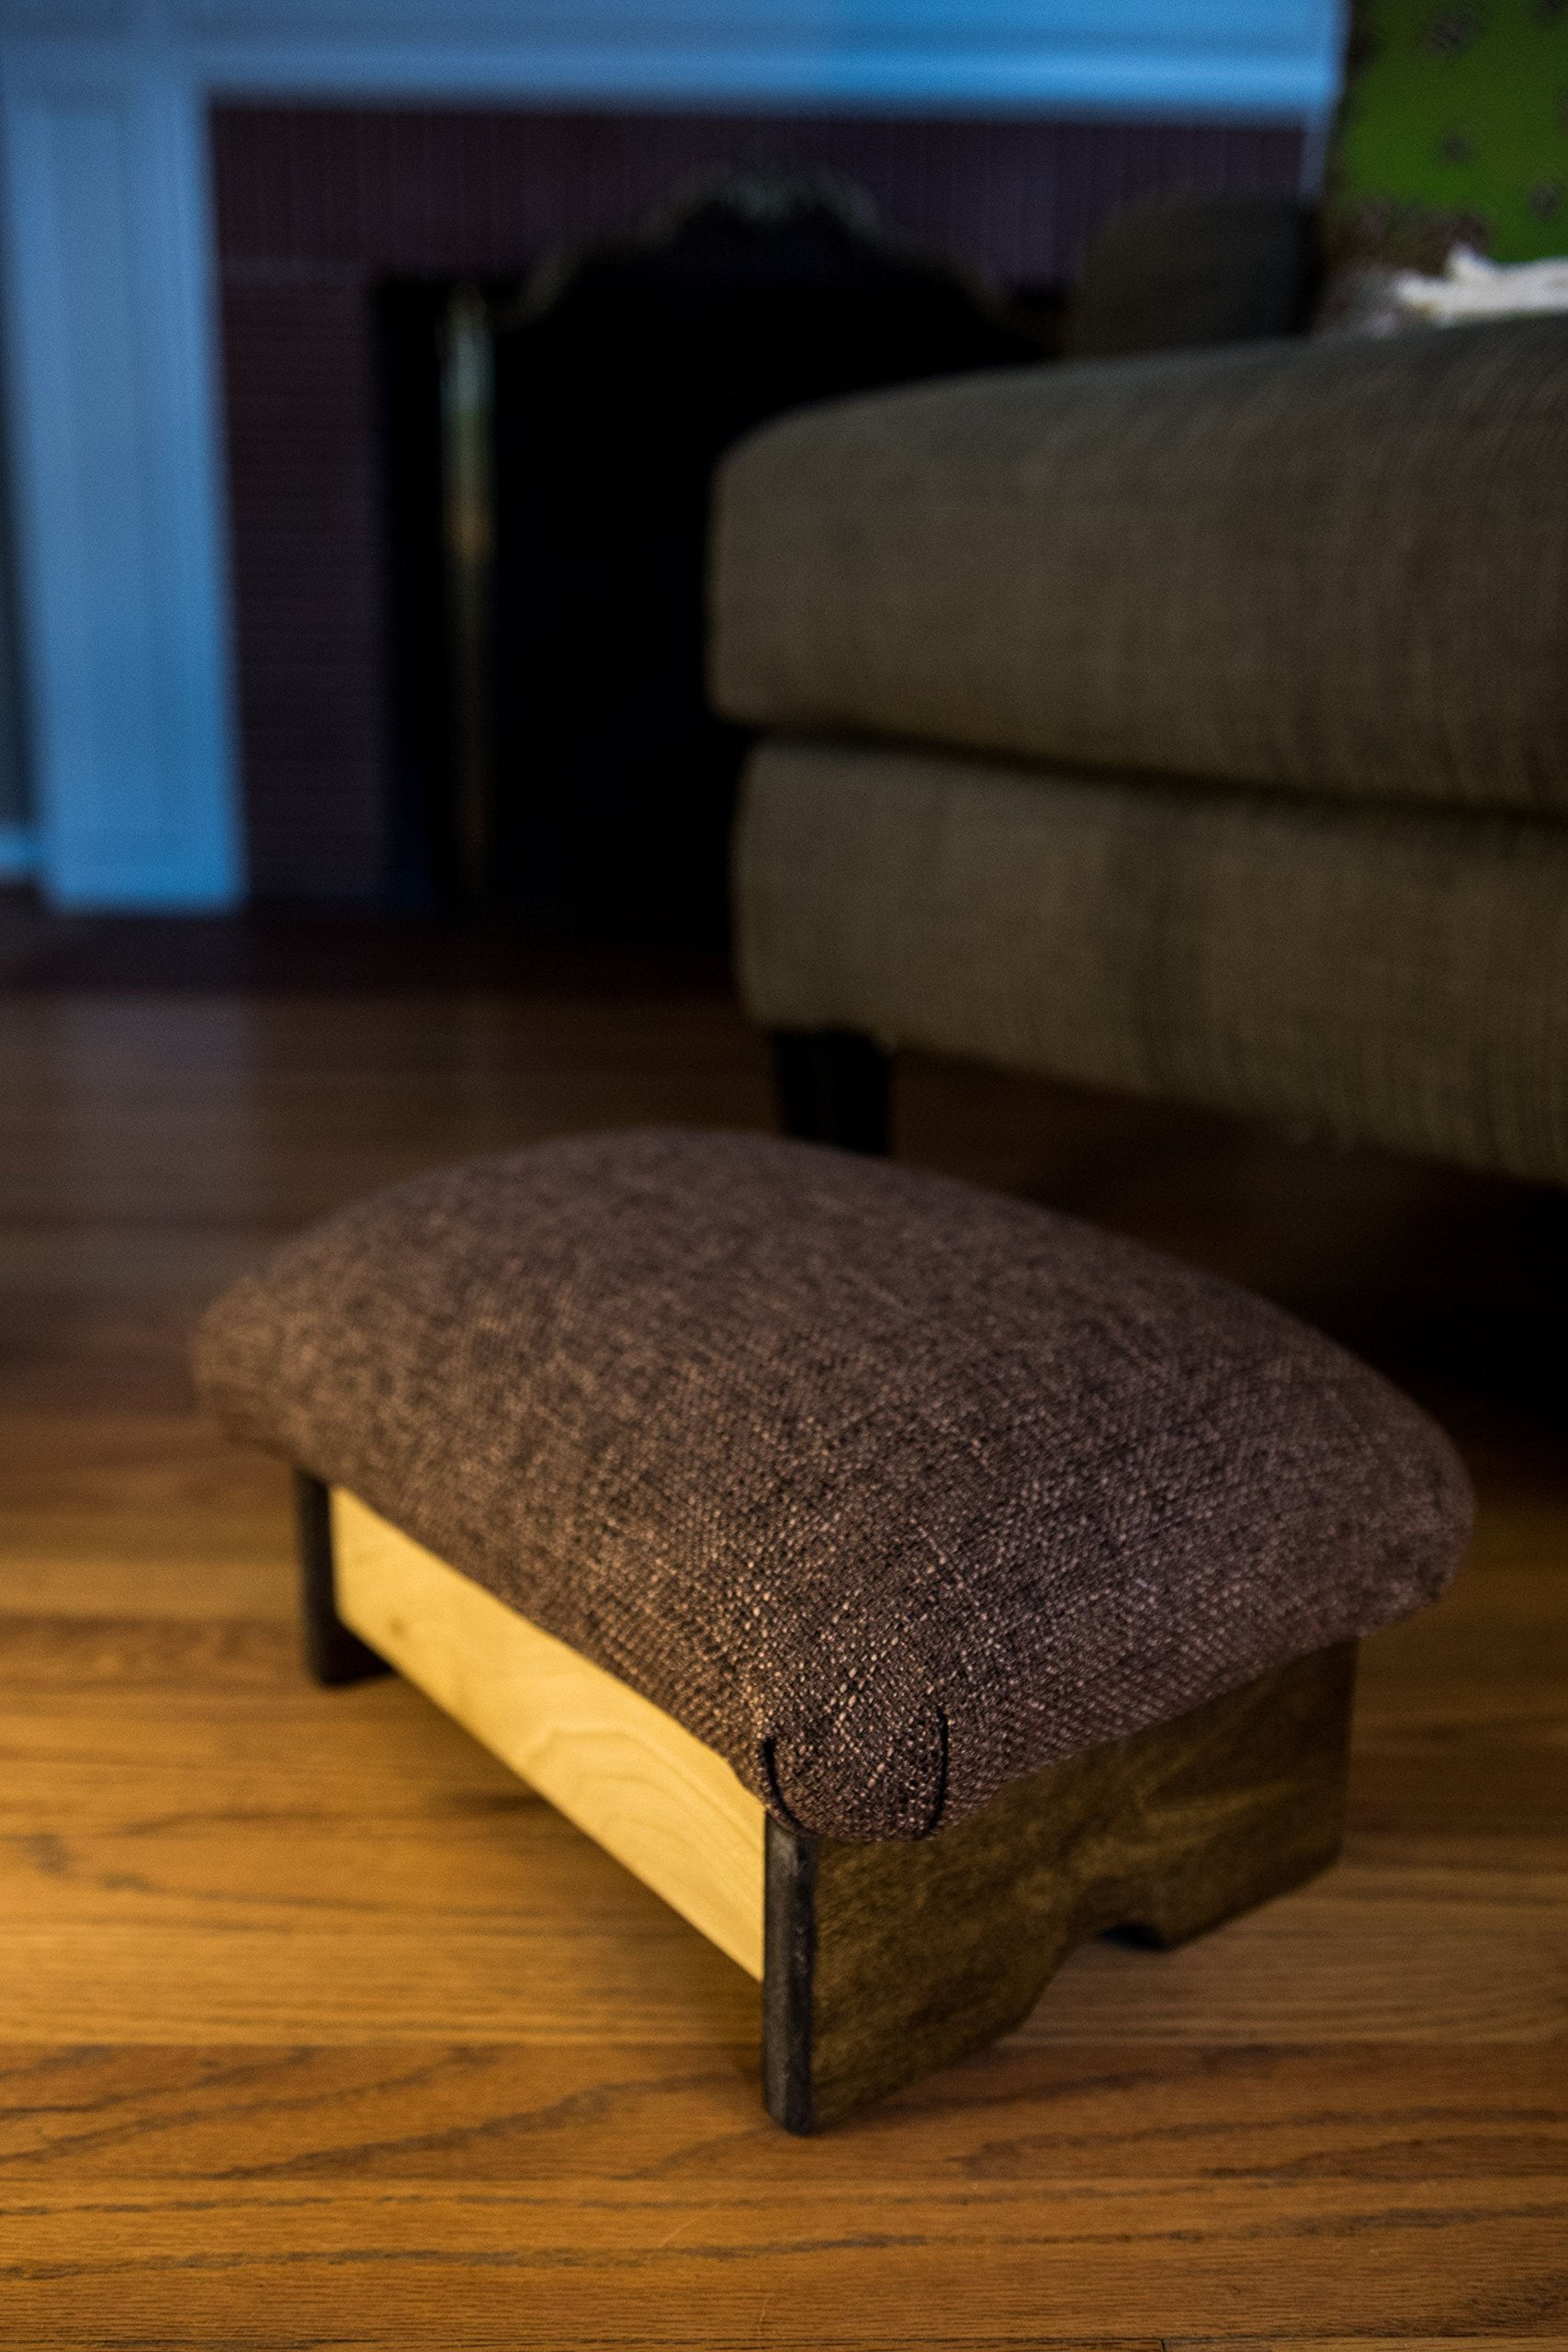 Padded Foot Stool, Solid Fabrics: Cocoa Brown, 7'' Tall, Chic Frame (Made in the USA)